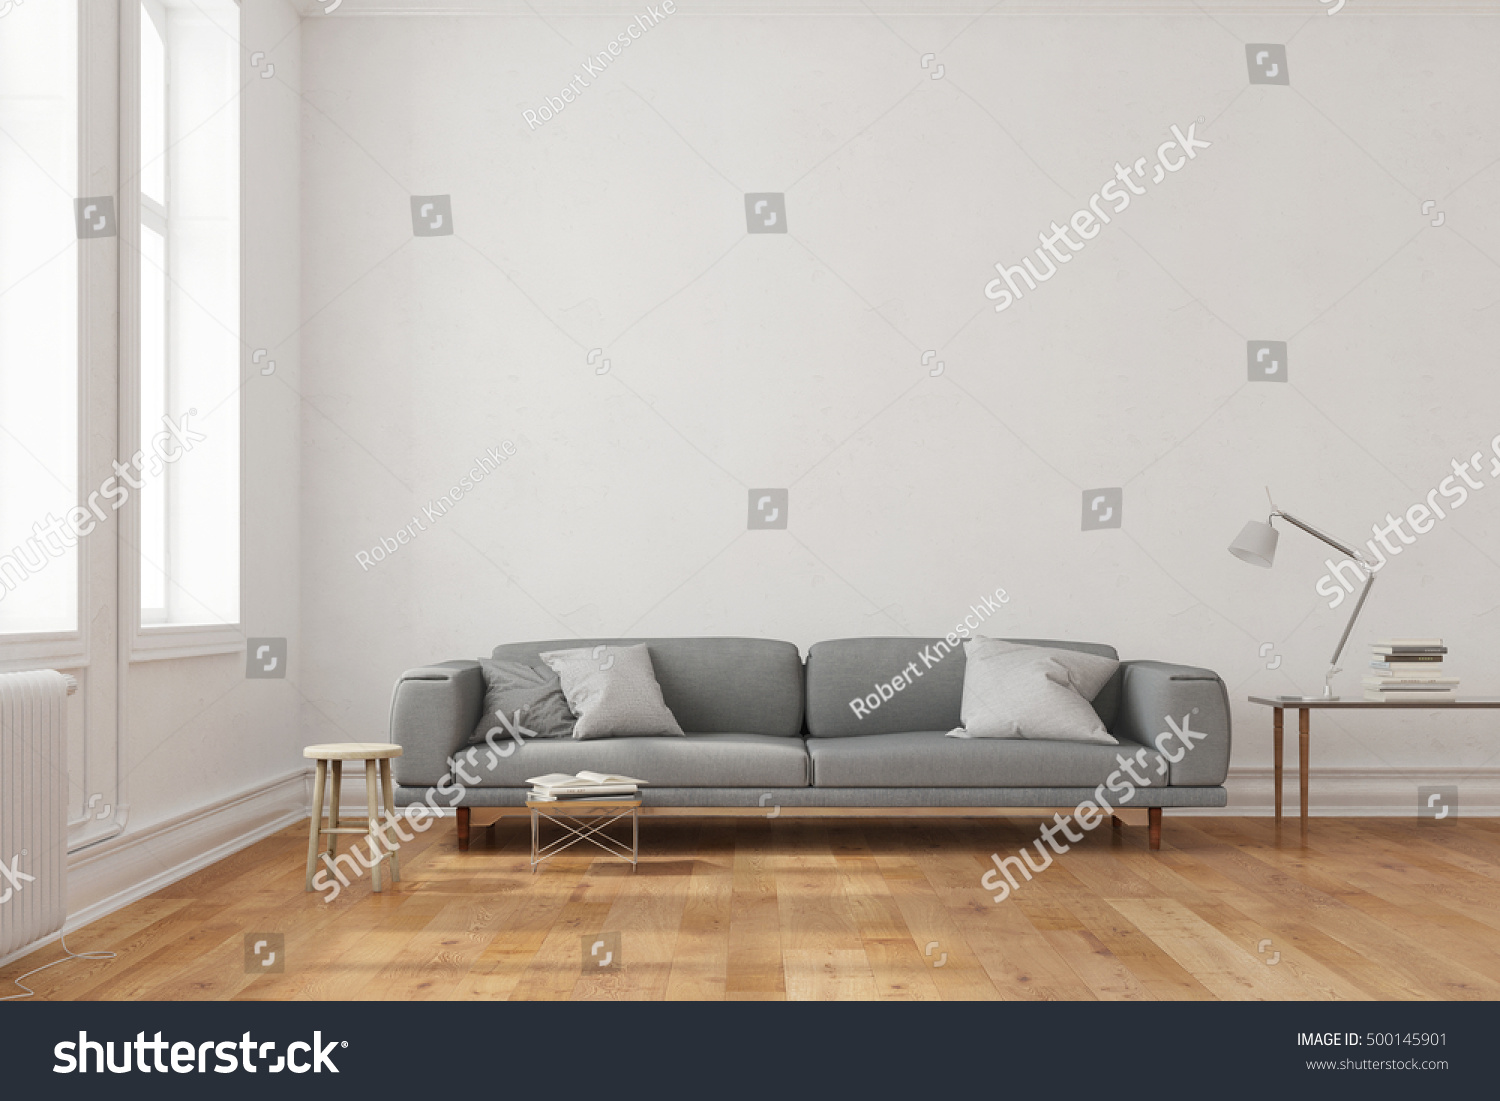 Space Canvas On Wall Over Couch Stock Illustration 500145901 ...